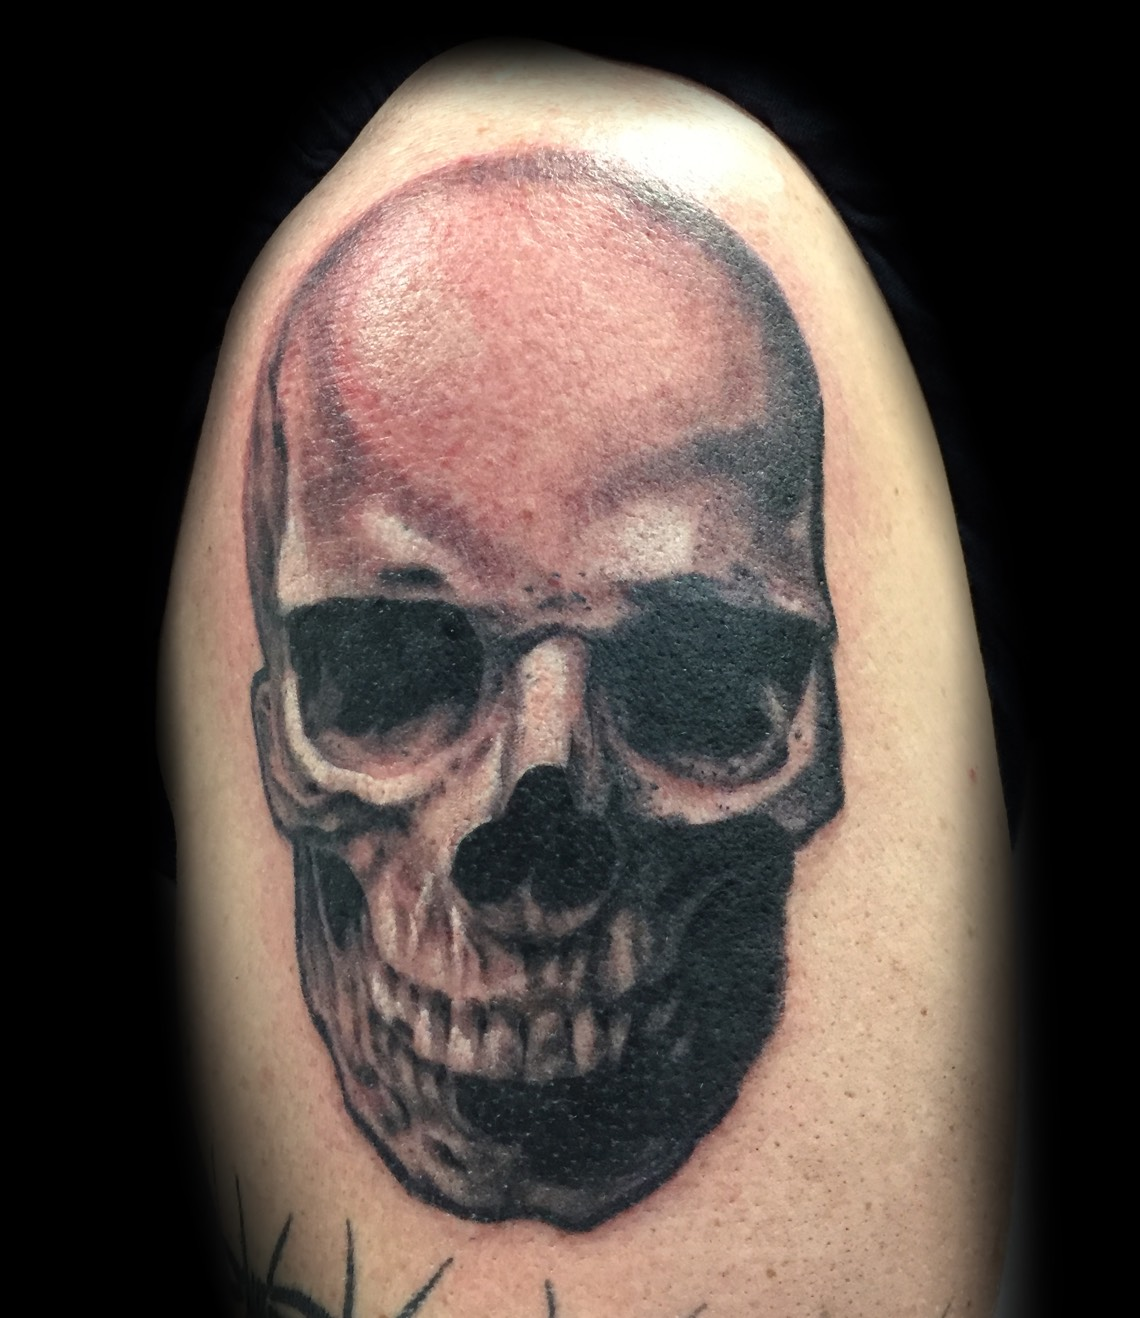 Dustin Quillen's skull tattoo